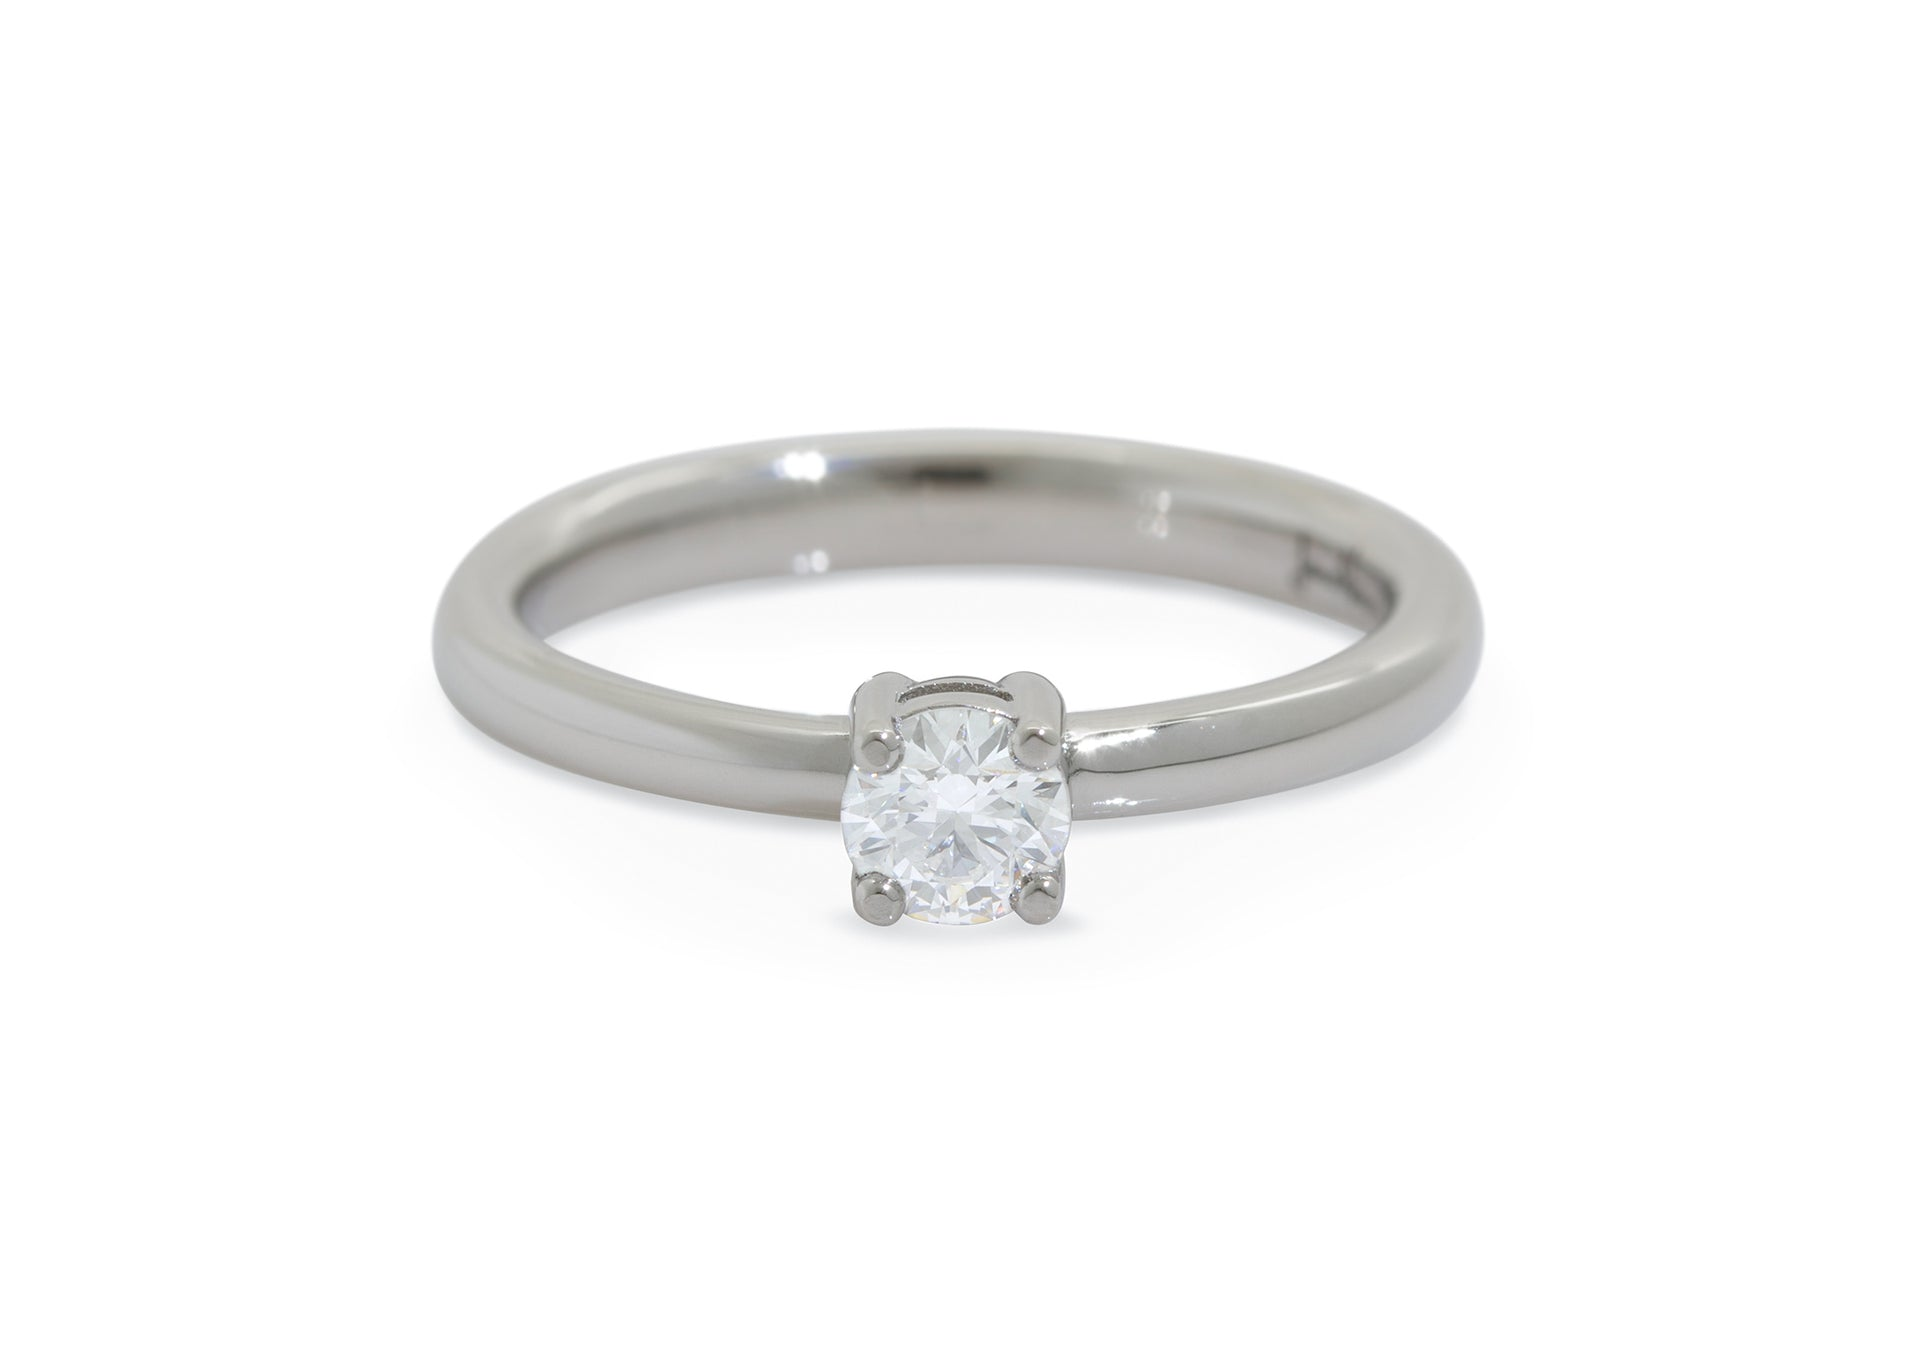 Aria Diamond Engagement Ring, White Gold & Platinum